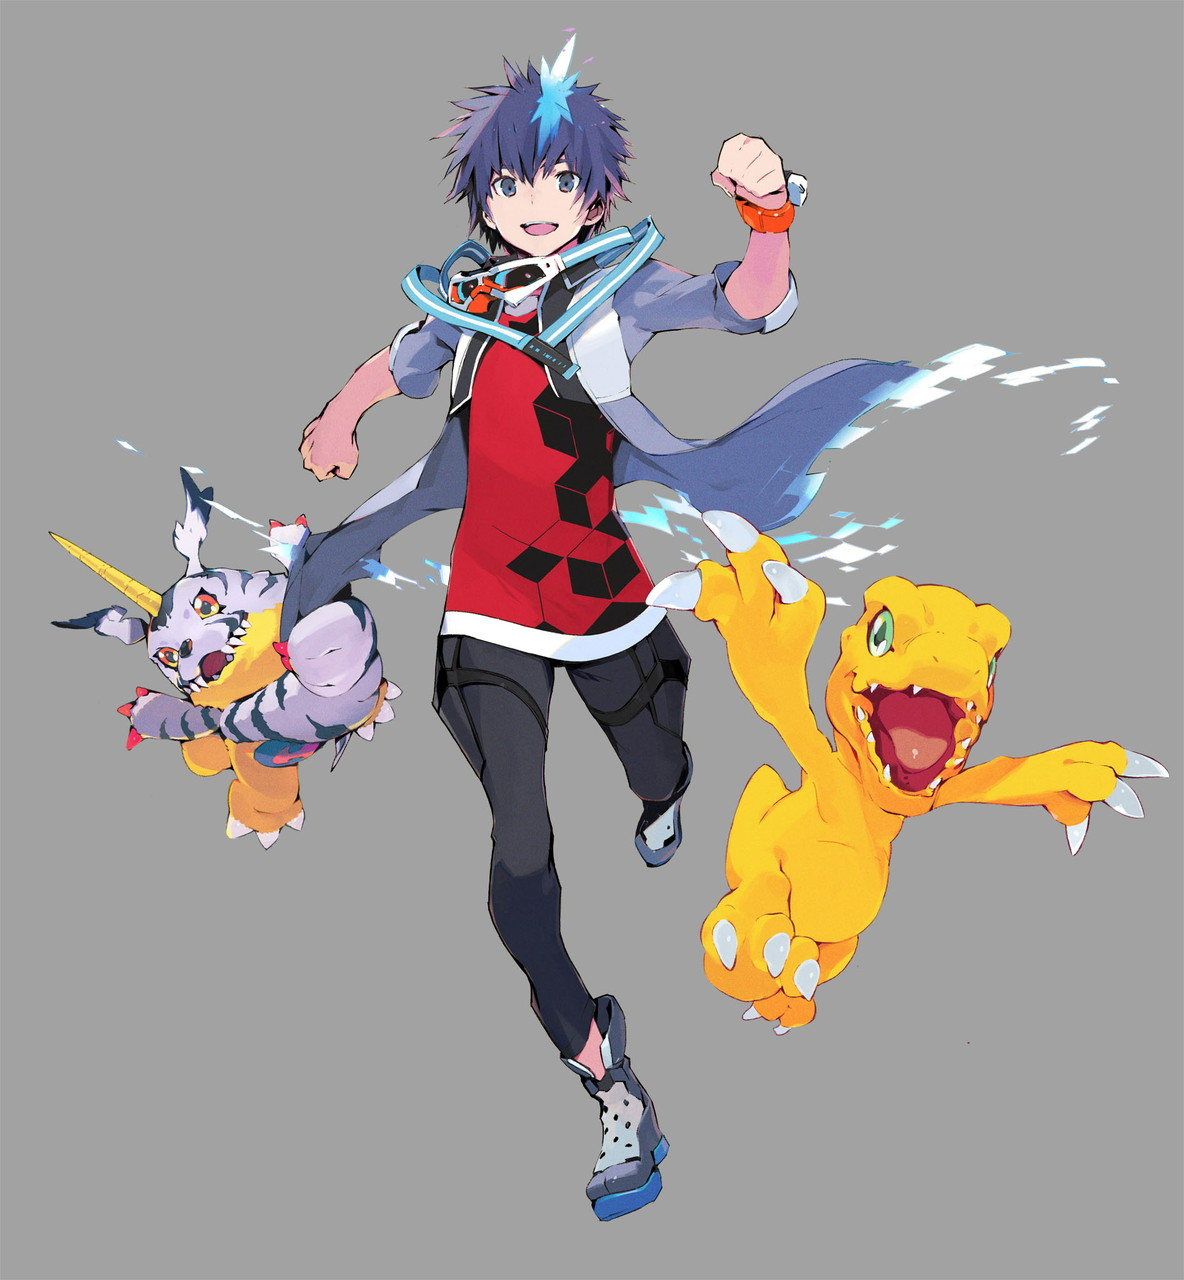 Digimon World: Next Order Fiche RPG (reviews, previews